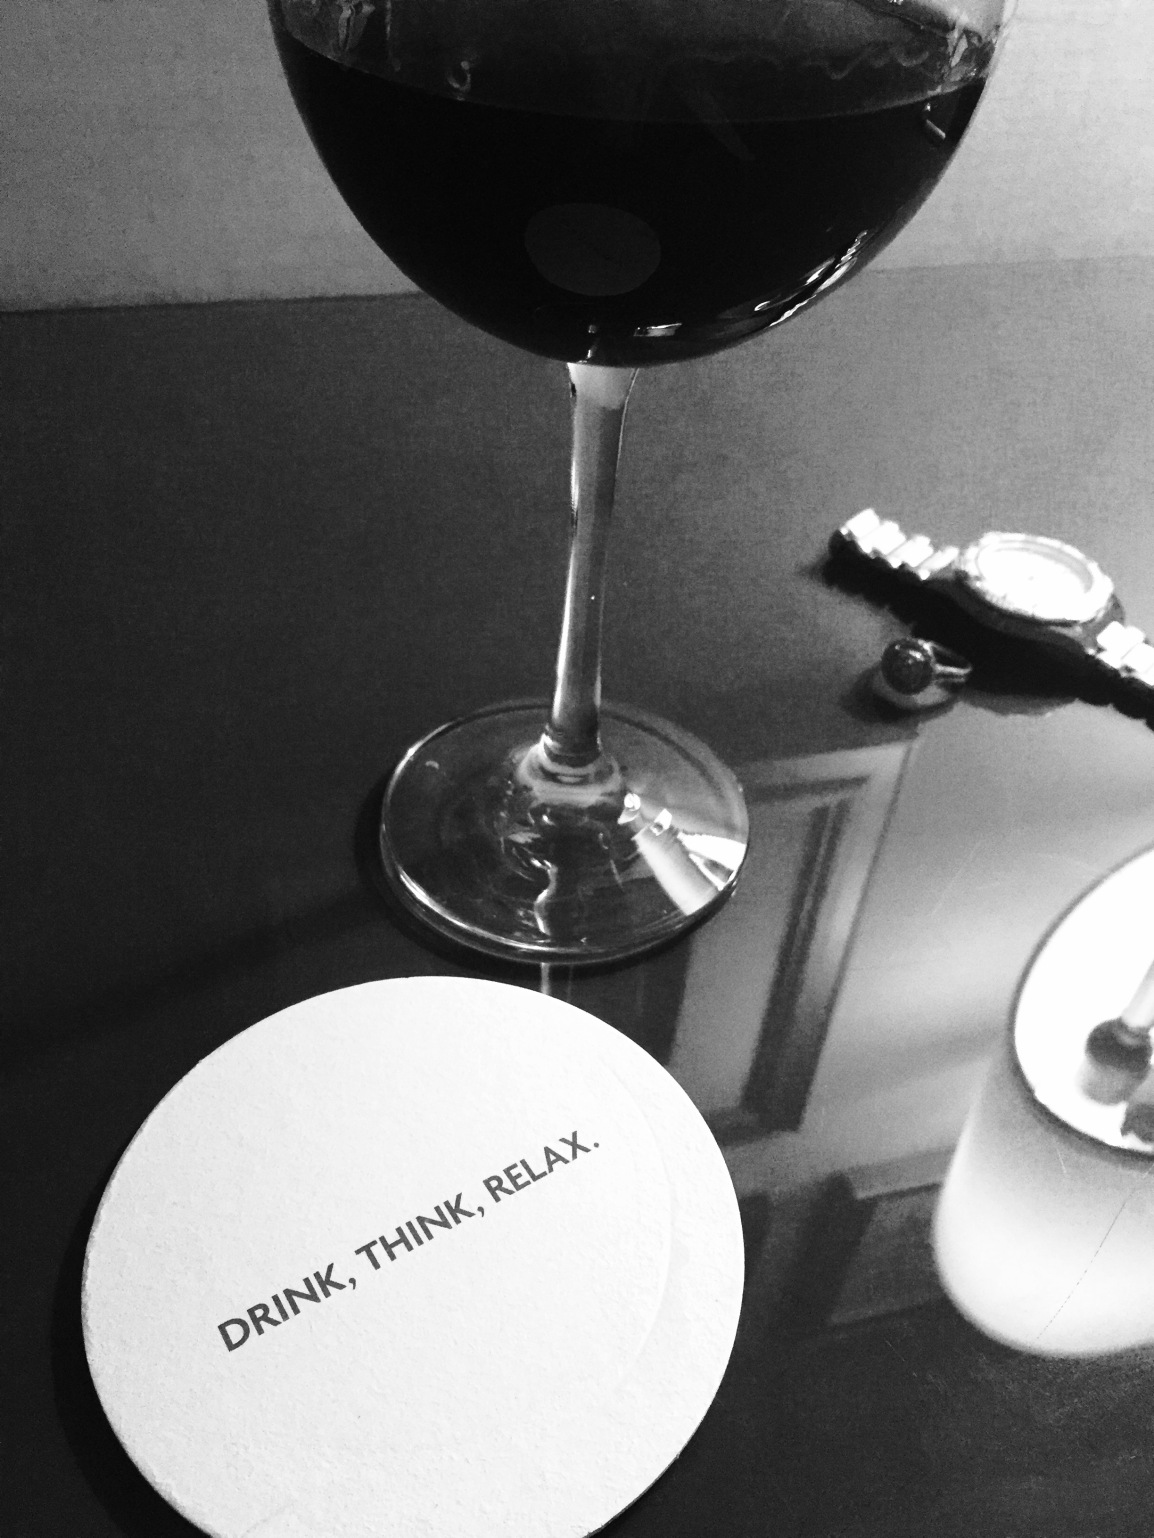 Drink Think Relax